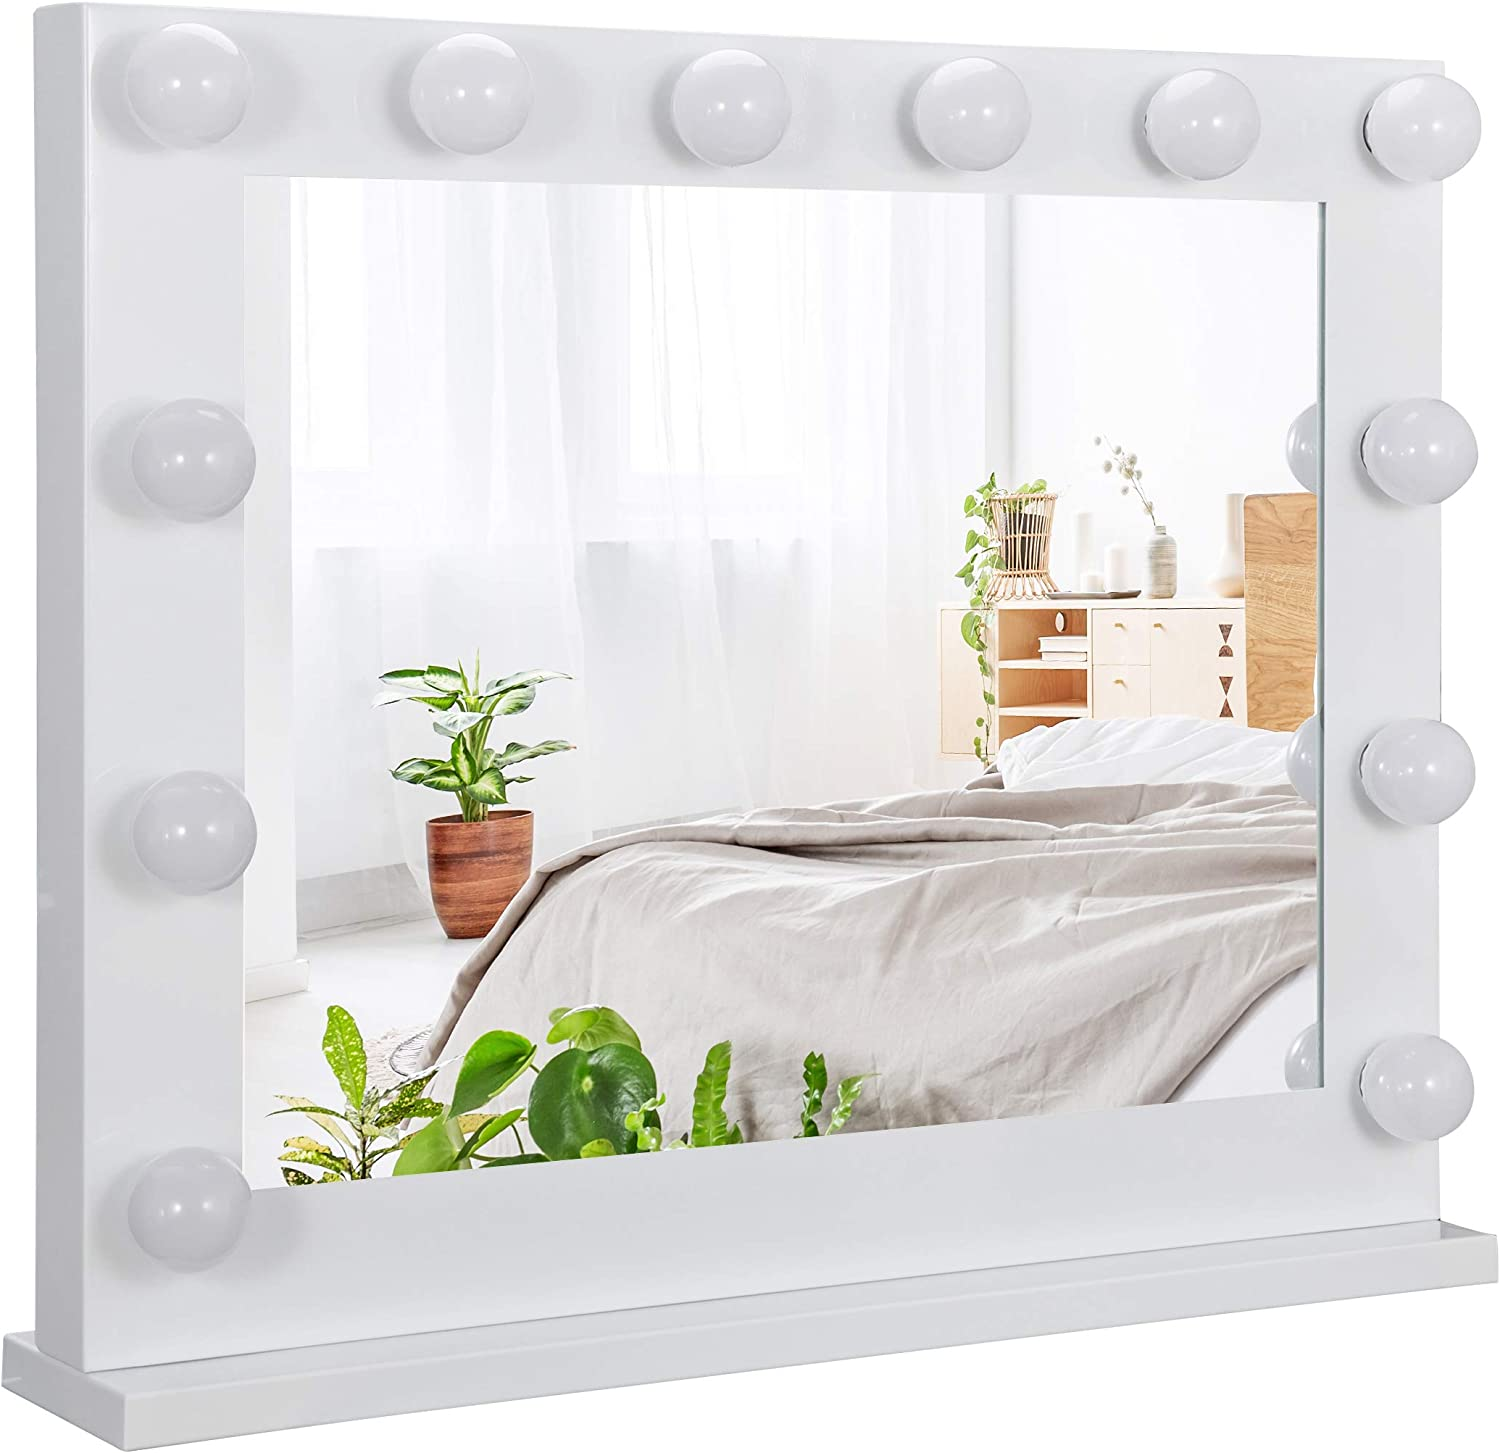 The Best vanity mirror with lights - Our pick